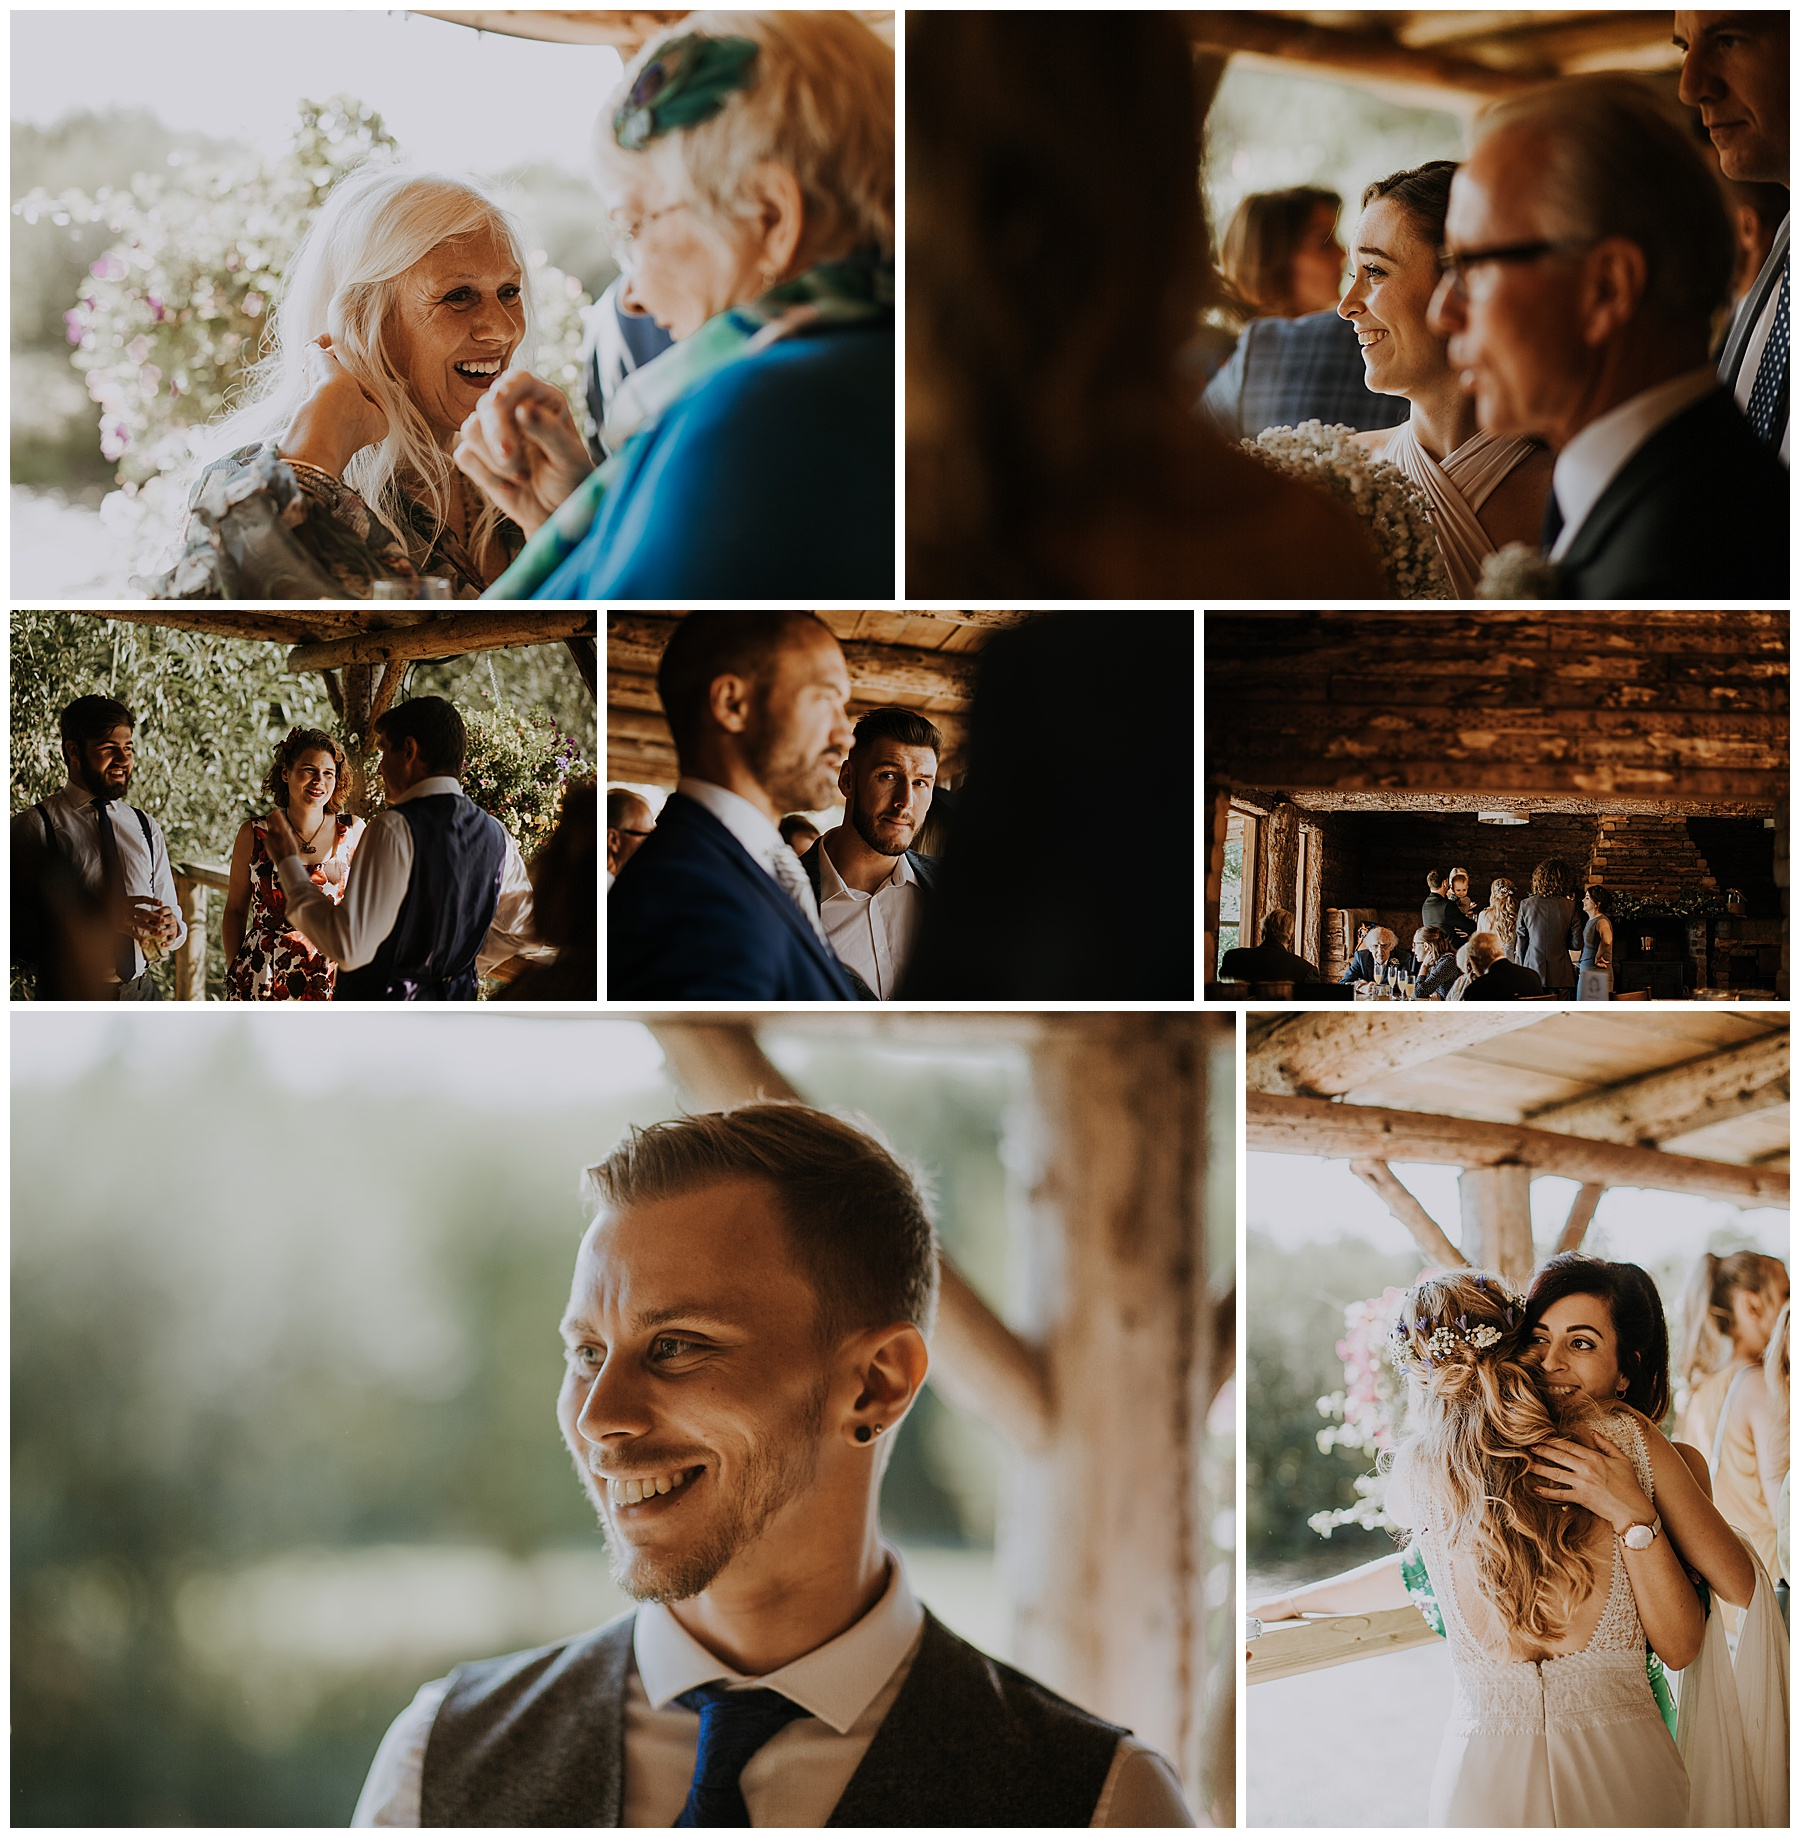 candid images of people at a wedding